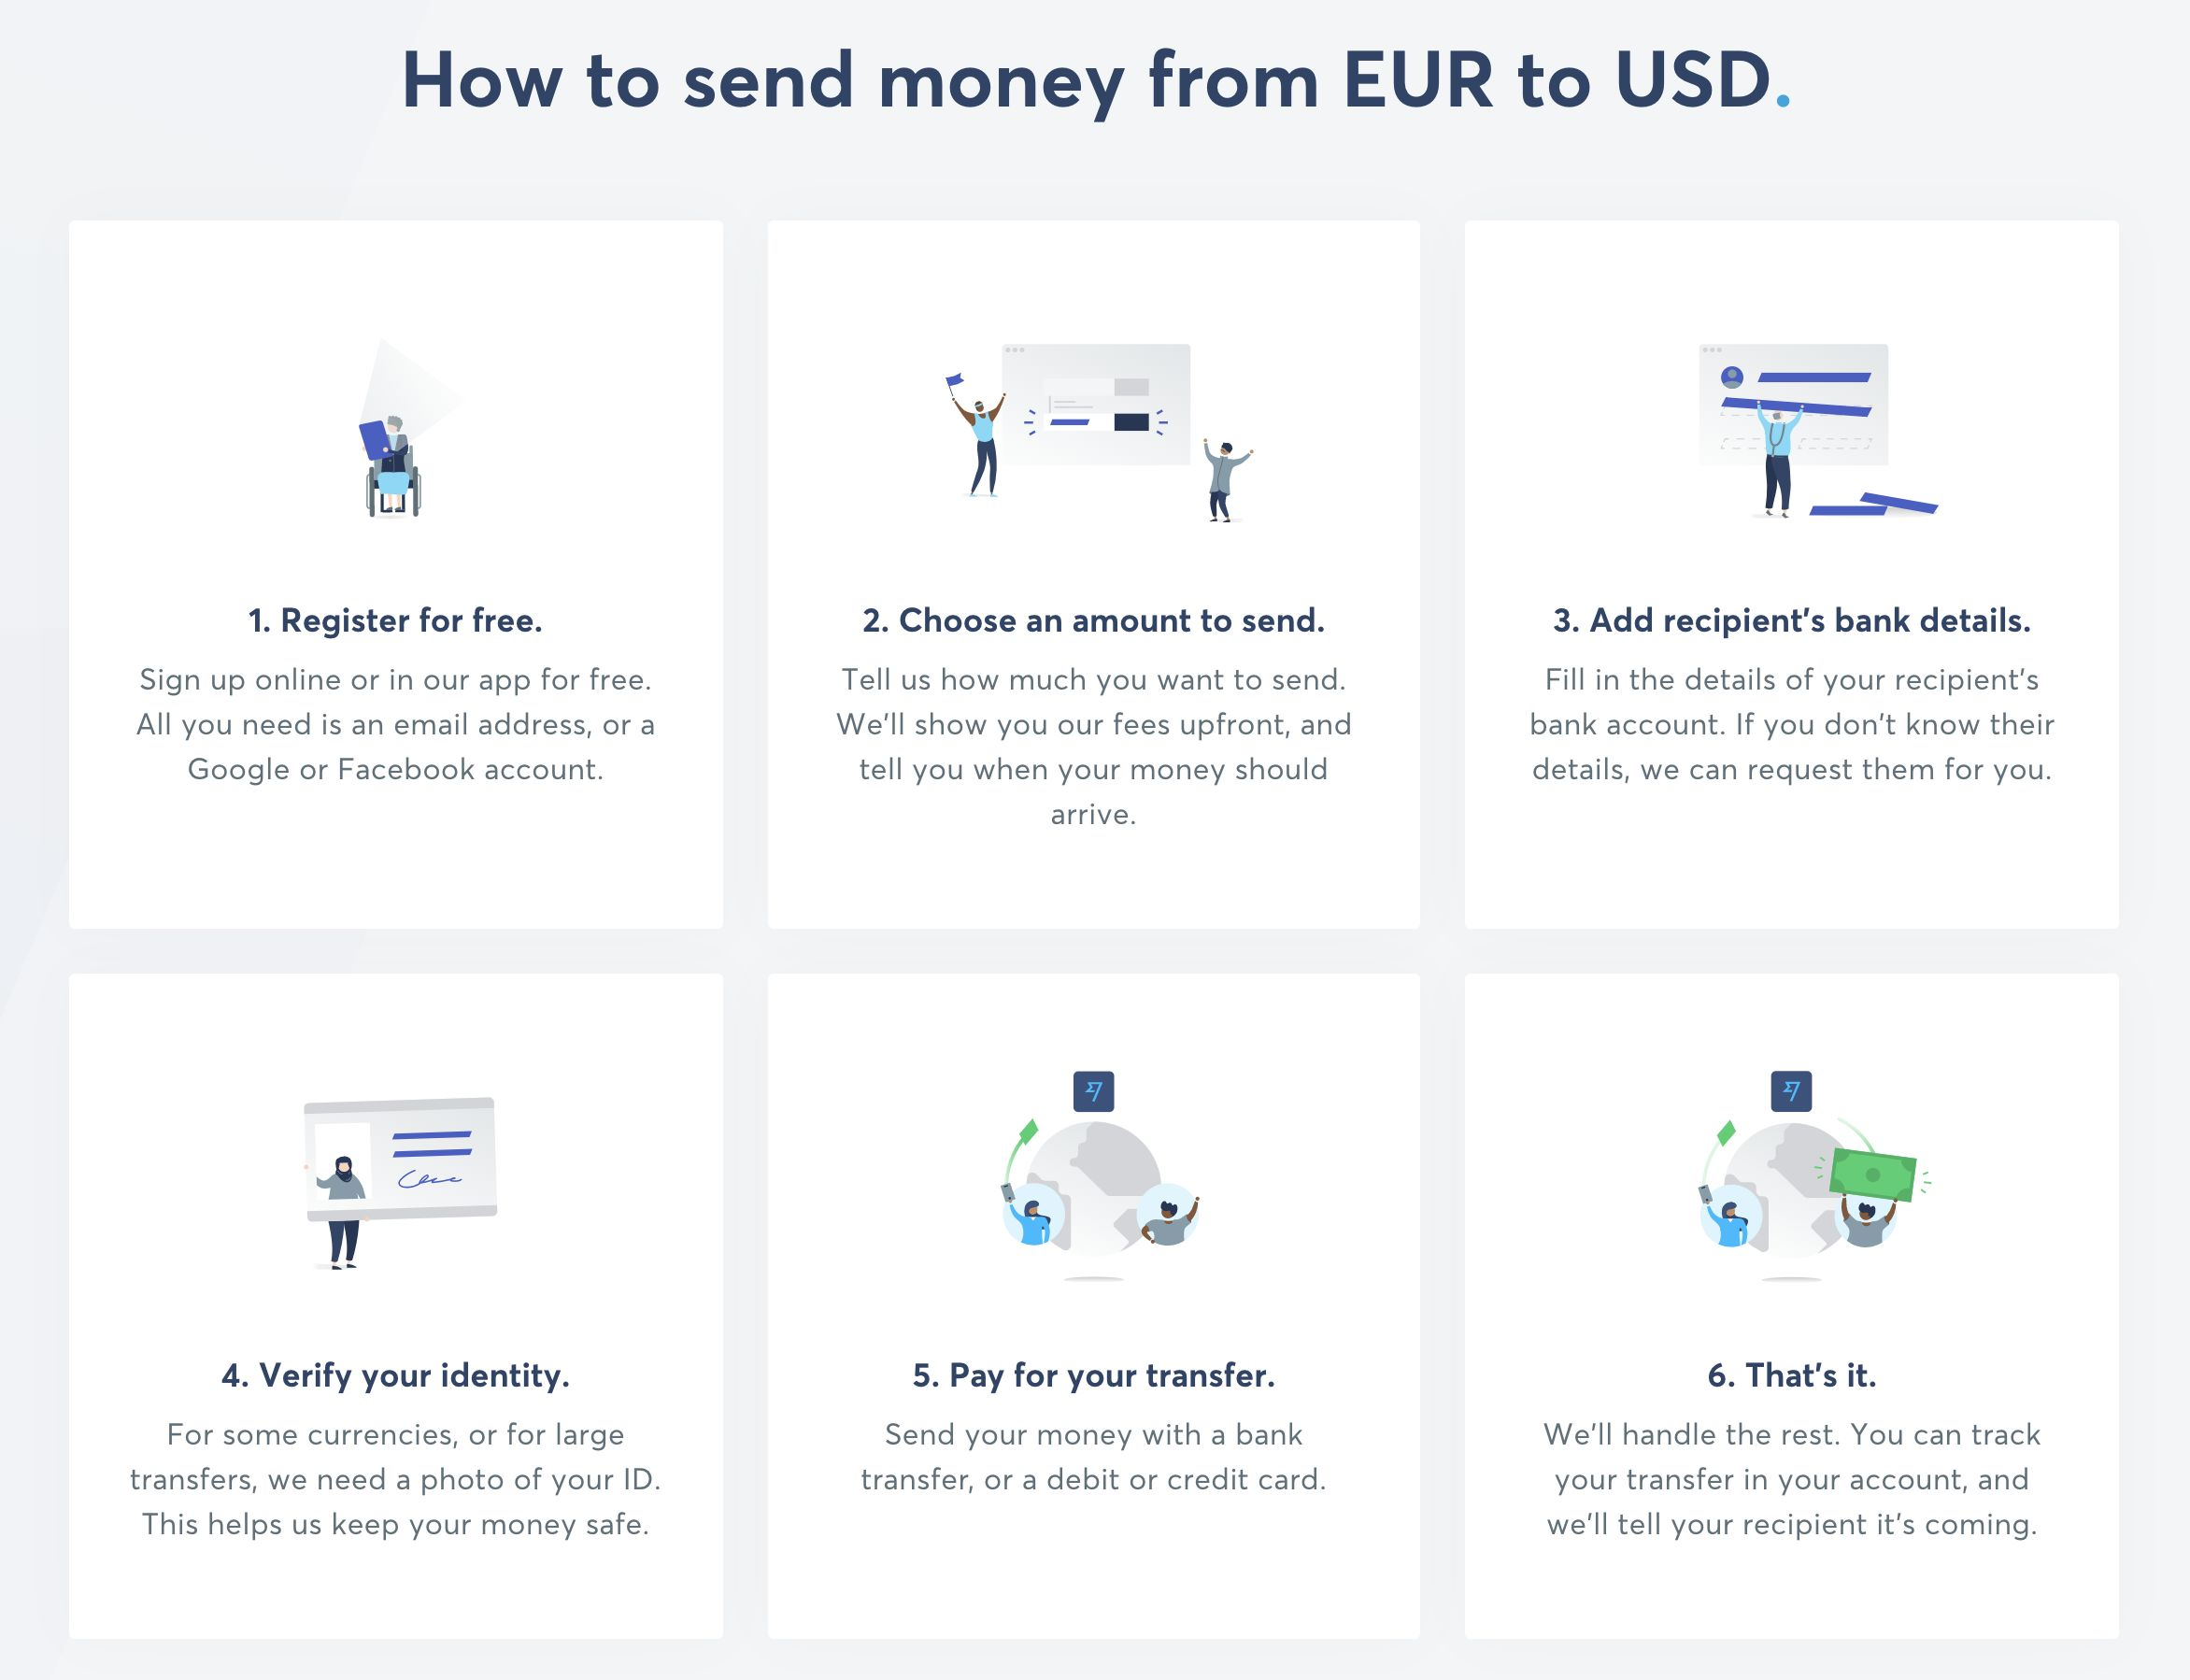 7 Benefits of Using TransferWise